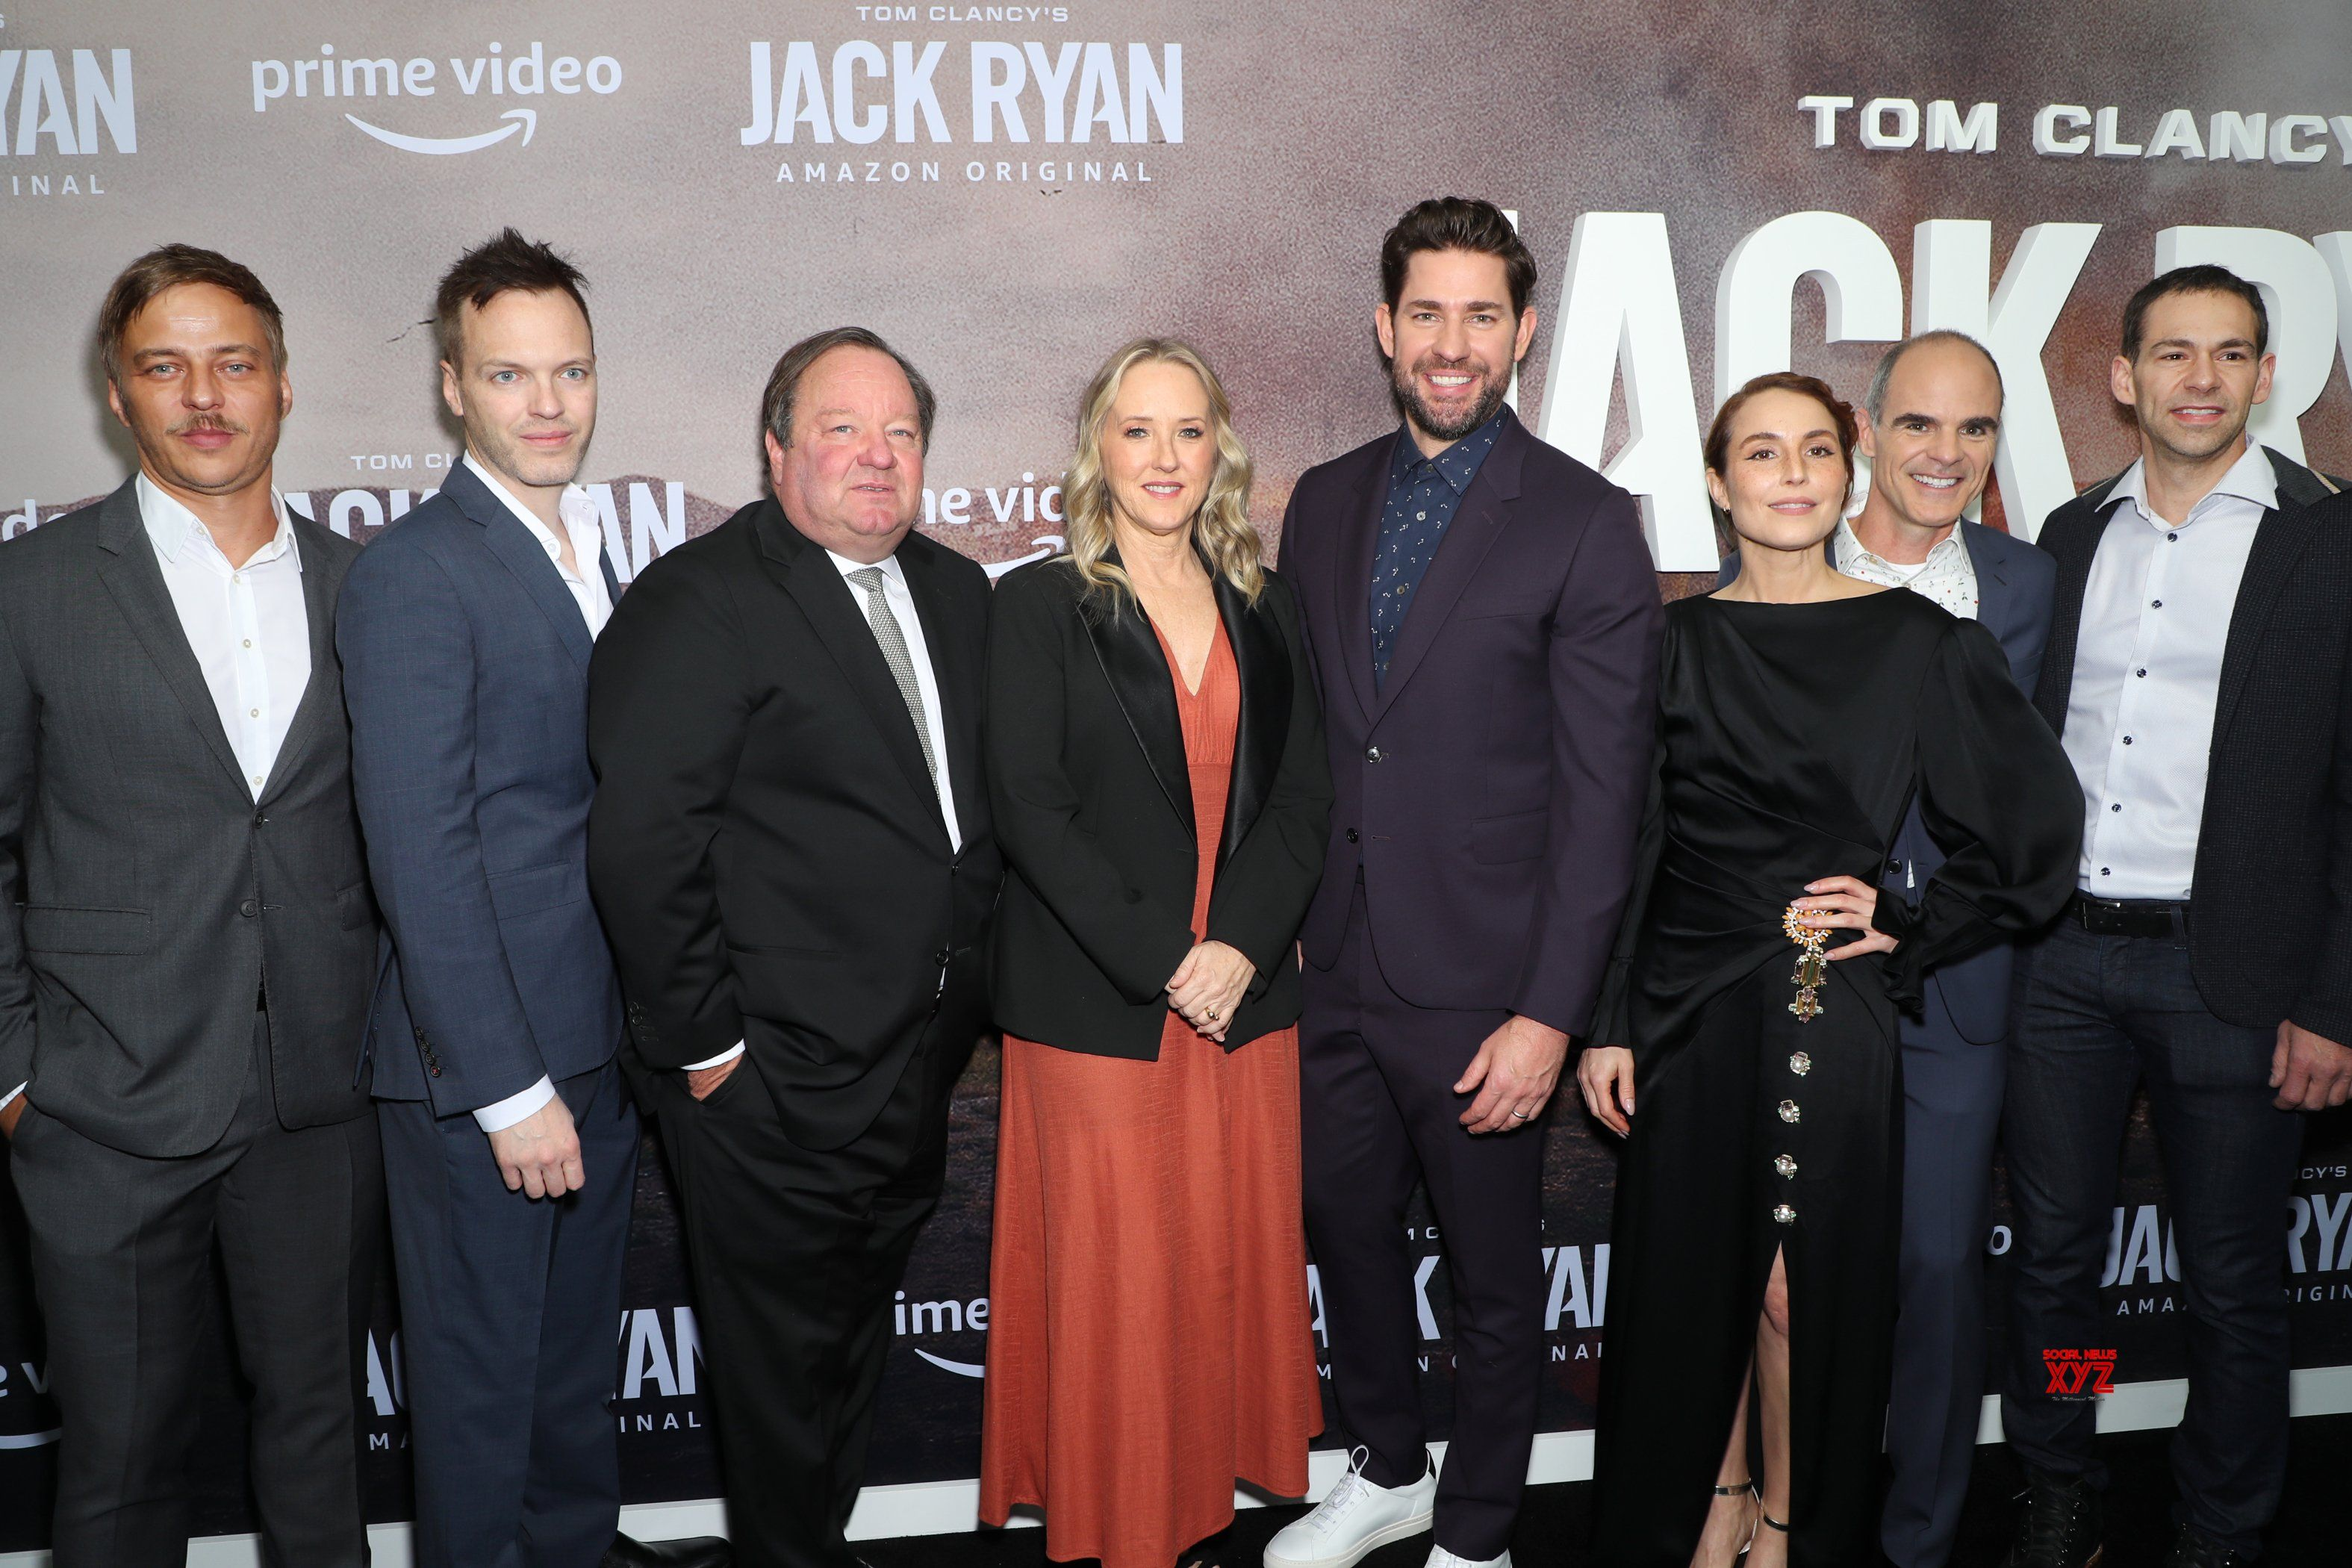 Tom Clancy's Jack Ryan Season 3 Release Date, Storyline, and all News